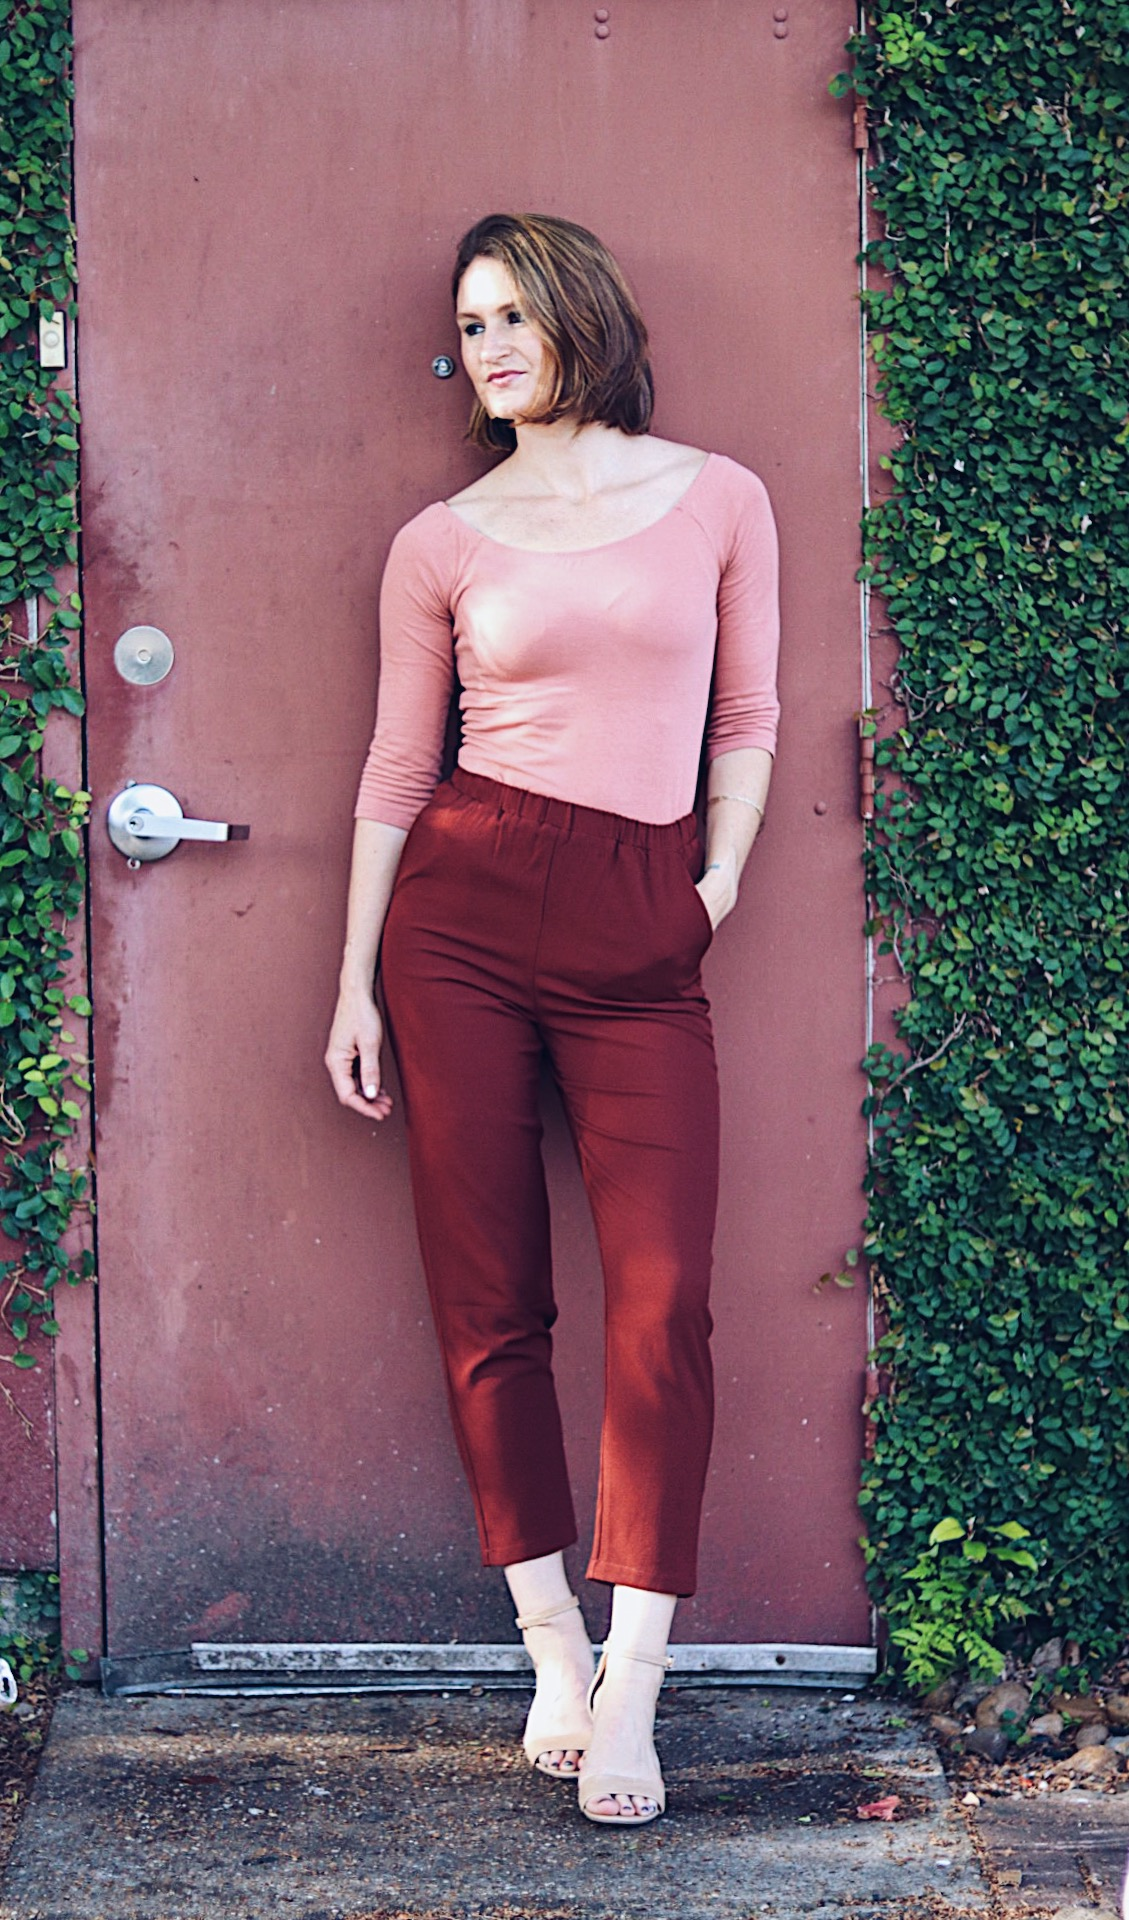 how to style pink and red, styling colors together, pairing pink and red together